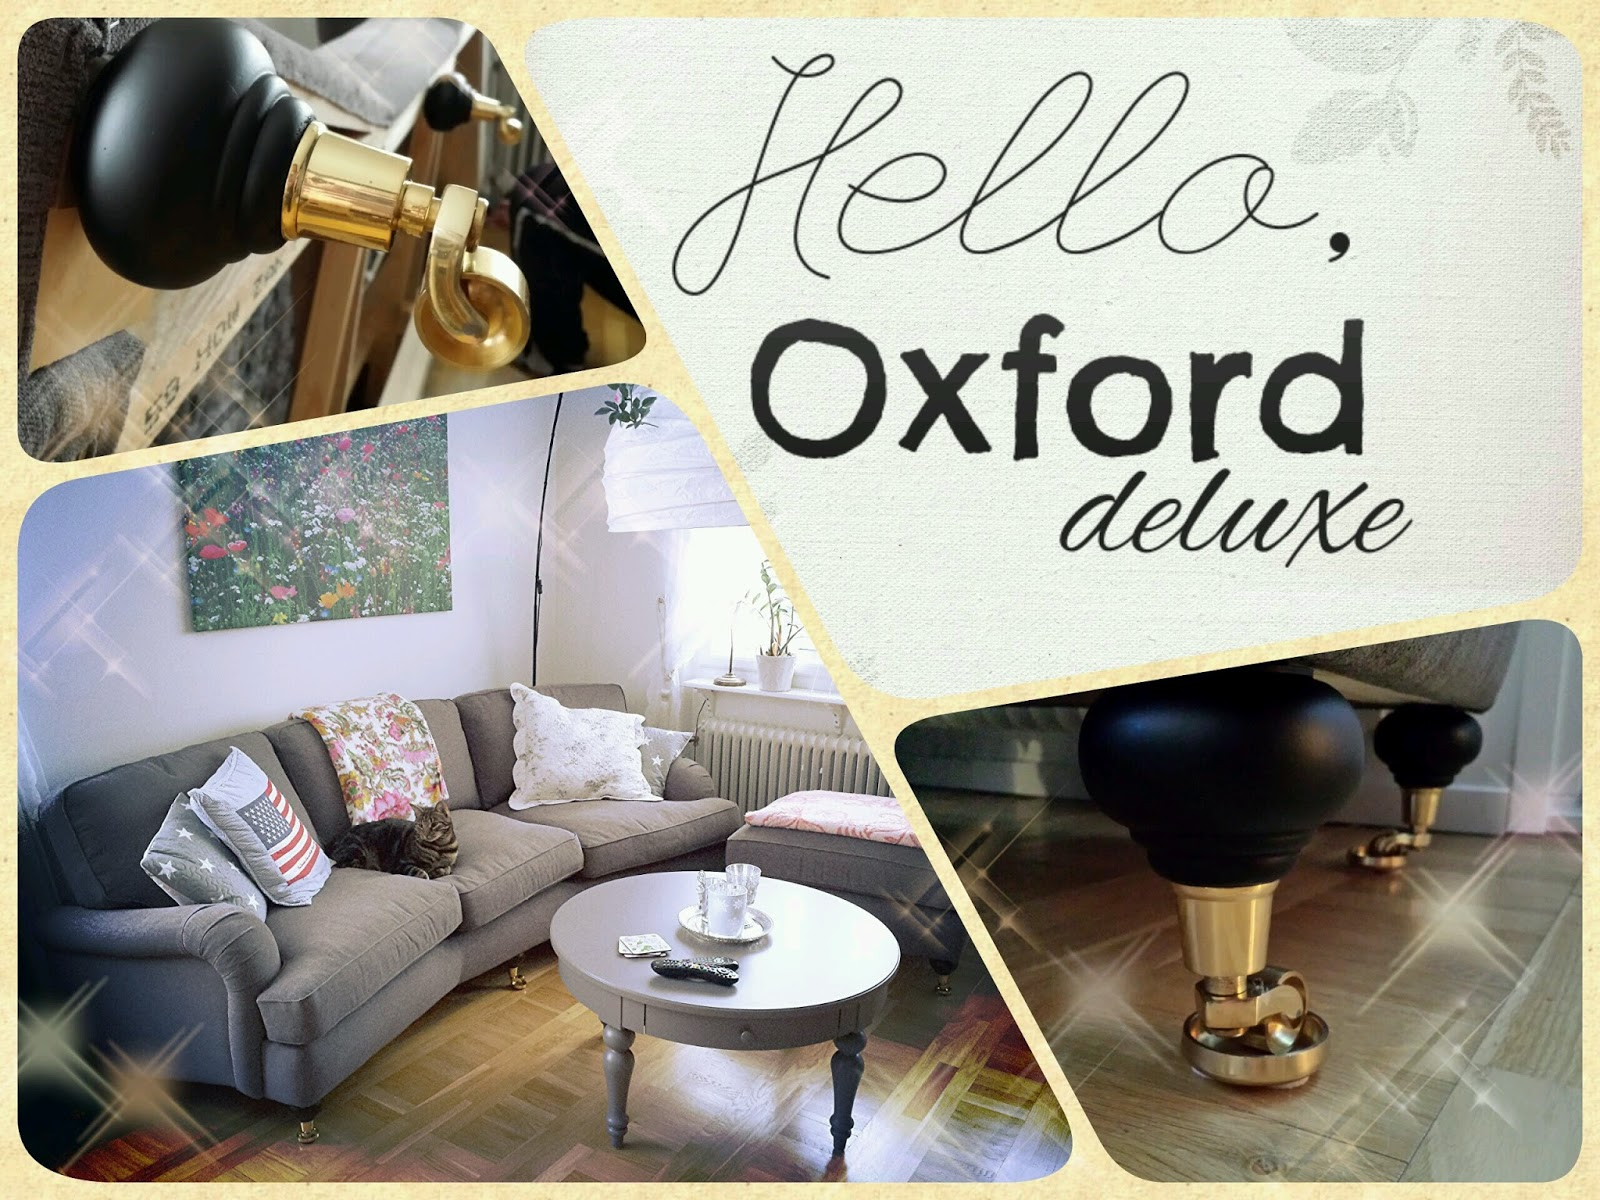 mio, howard, soffa, couch, oxford delux, black and gold, svart och guld